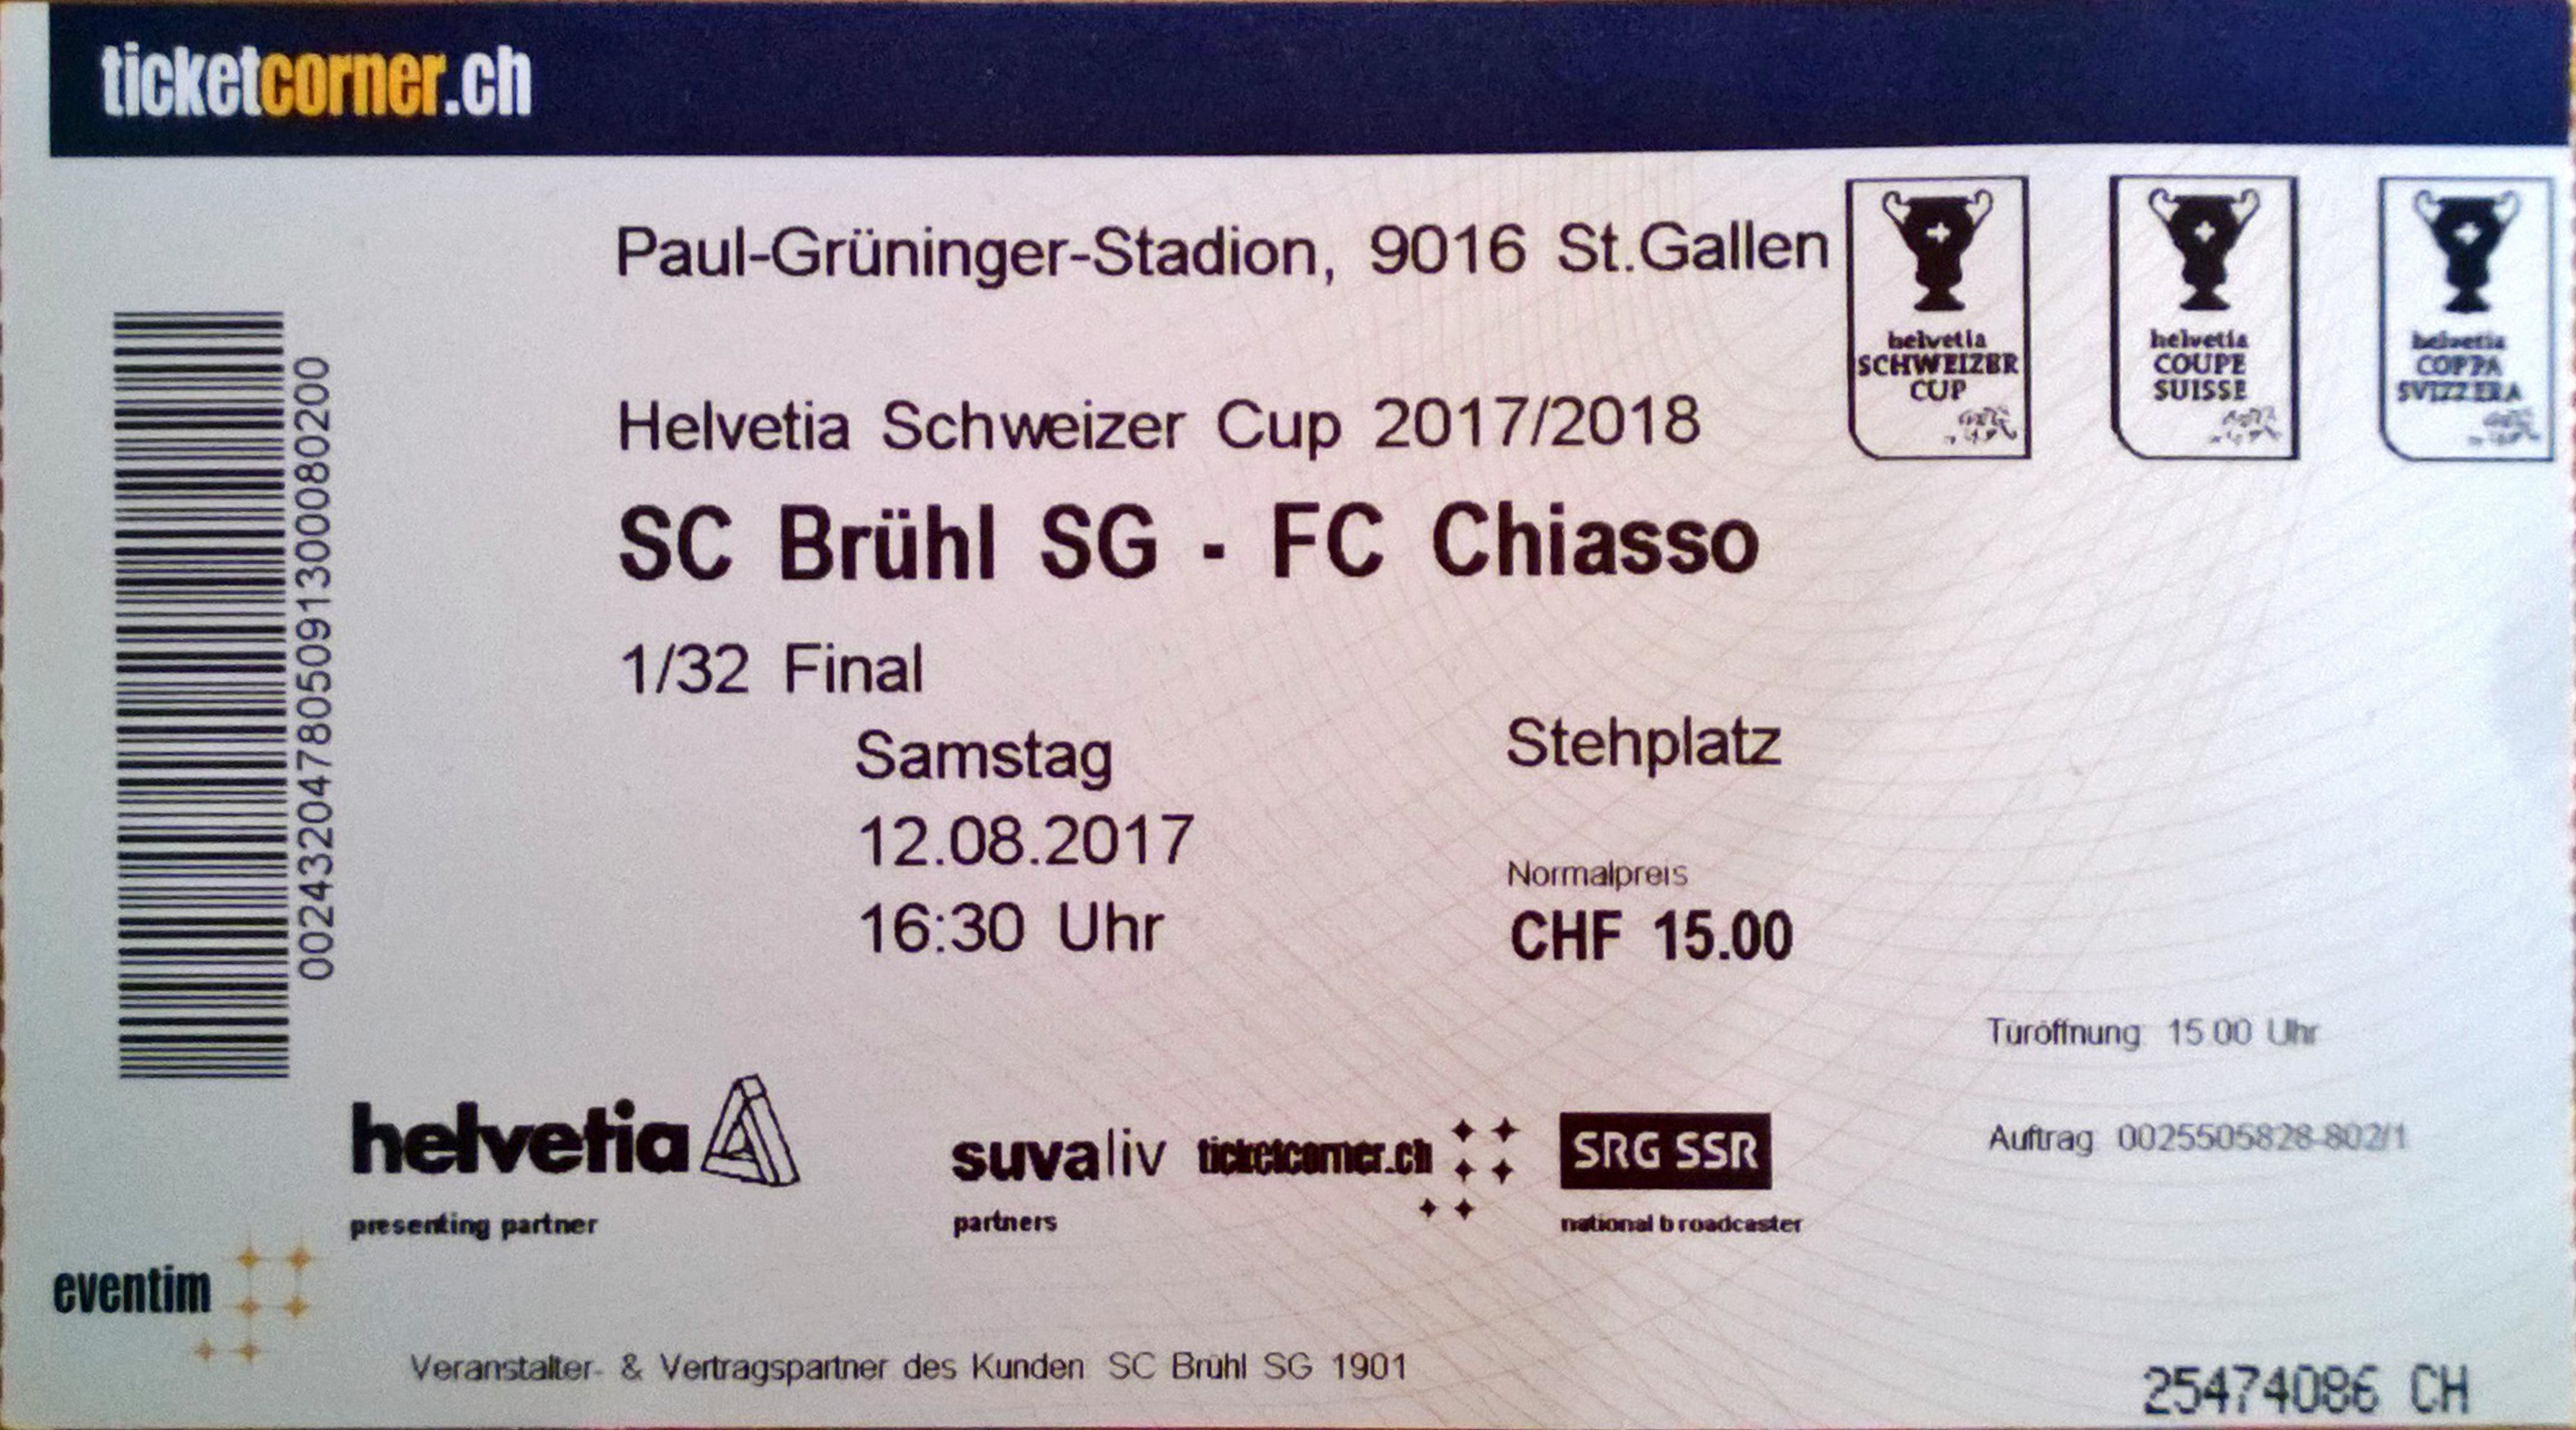 Groundhopping, St. Gallen, Paul-Grüninger-Stadion, Krontal, Fussball, SC Brühl - FC Chiasso, Ticket